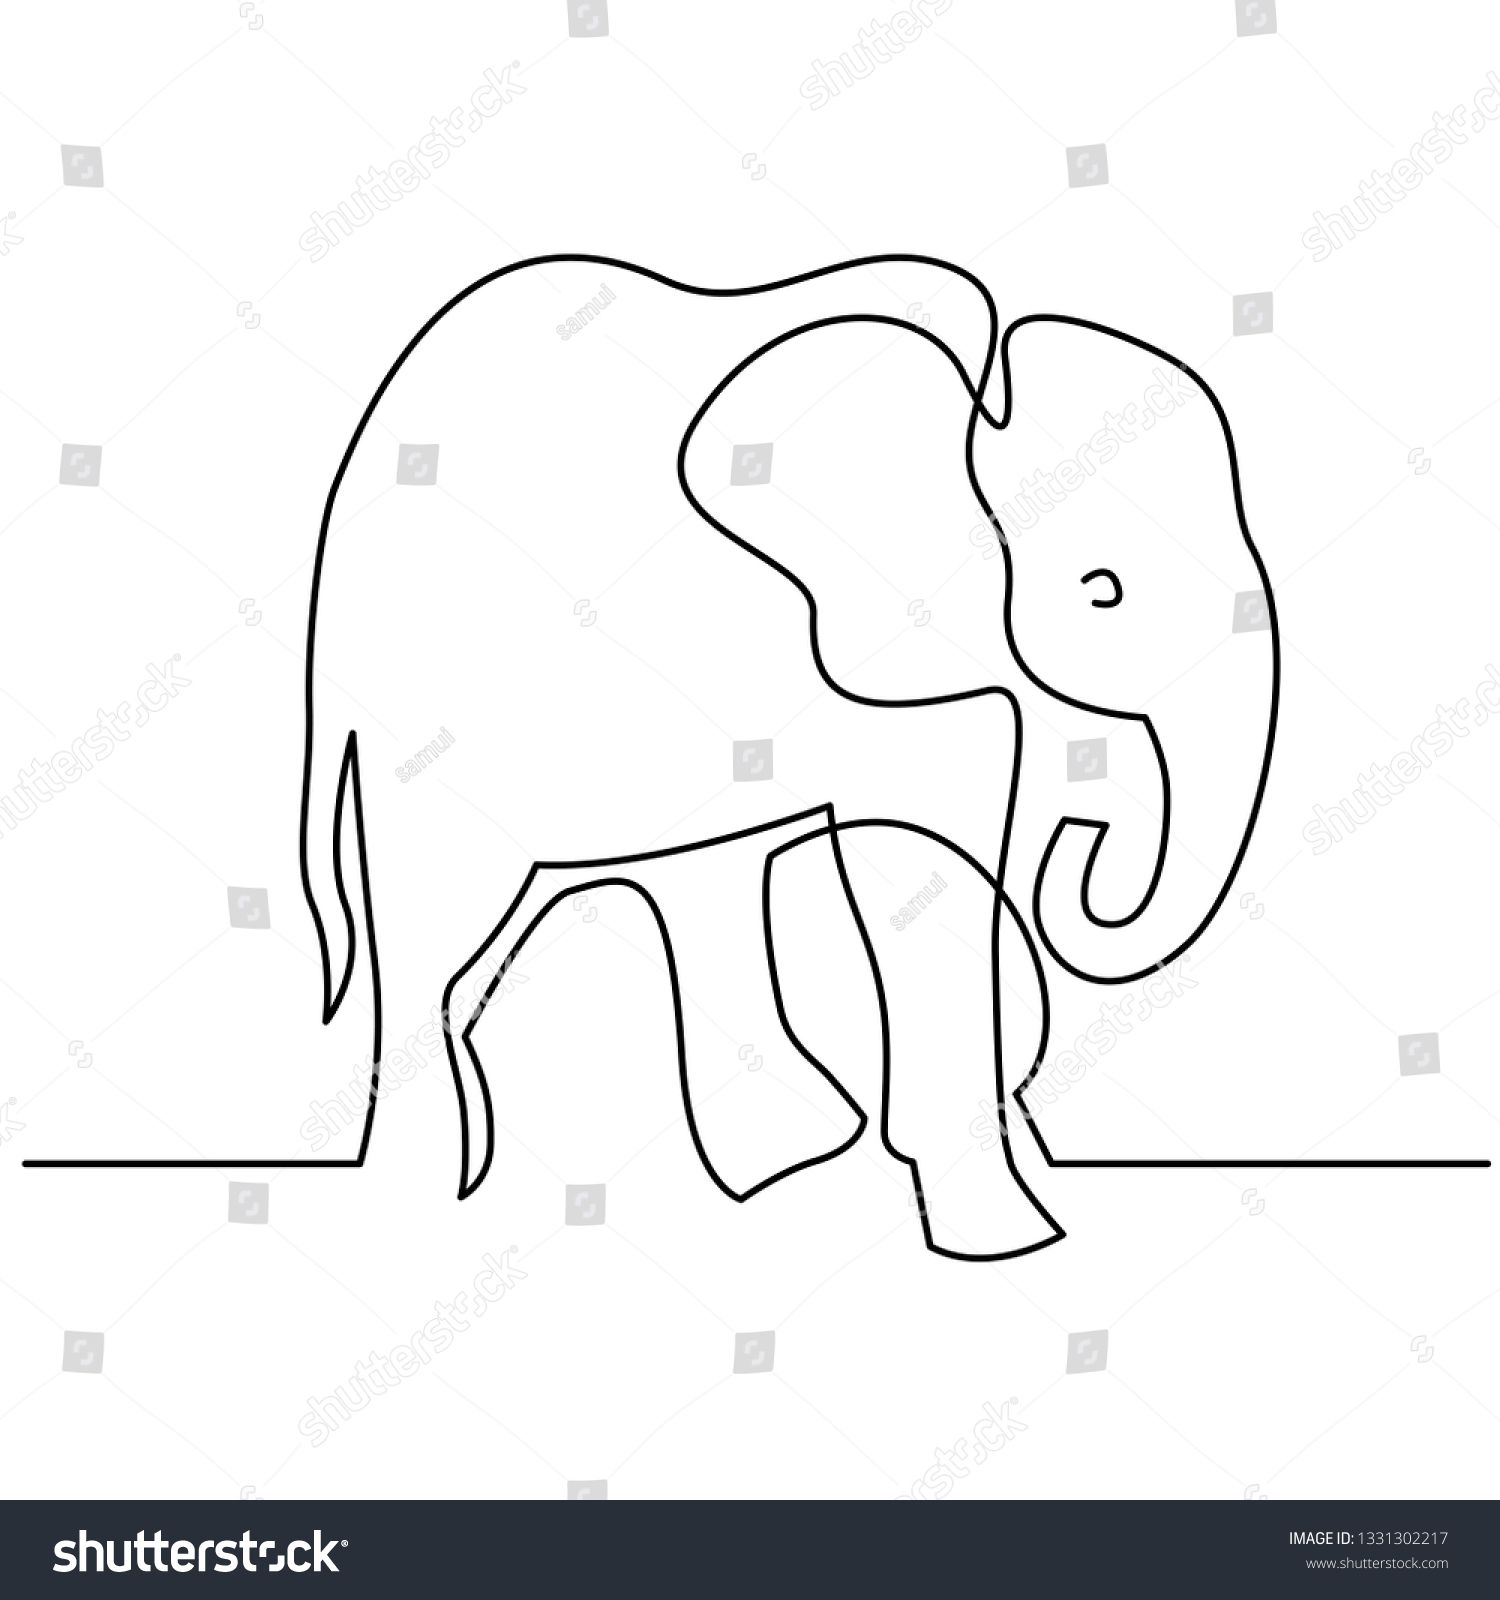 Elephant continuous one line drawings. Wild large animals.